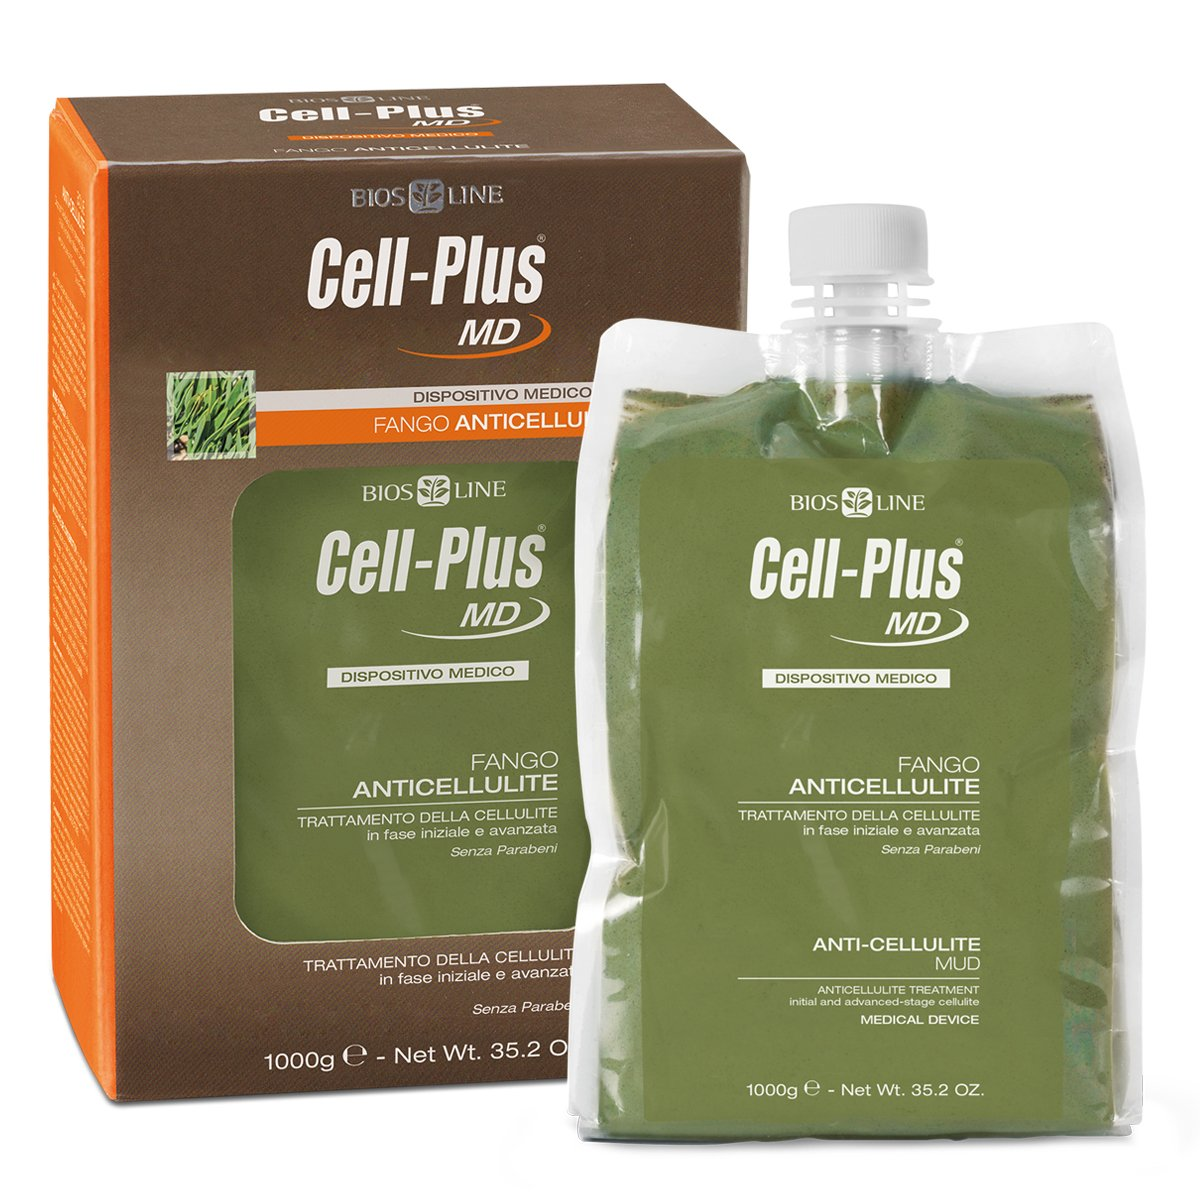 CELL-PLUS MD FANGO ANTICELLULITE 1 KG